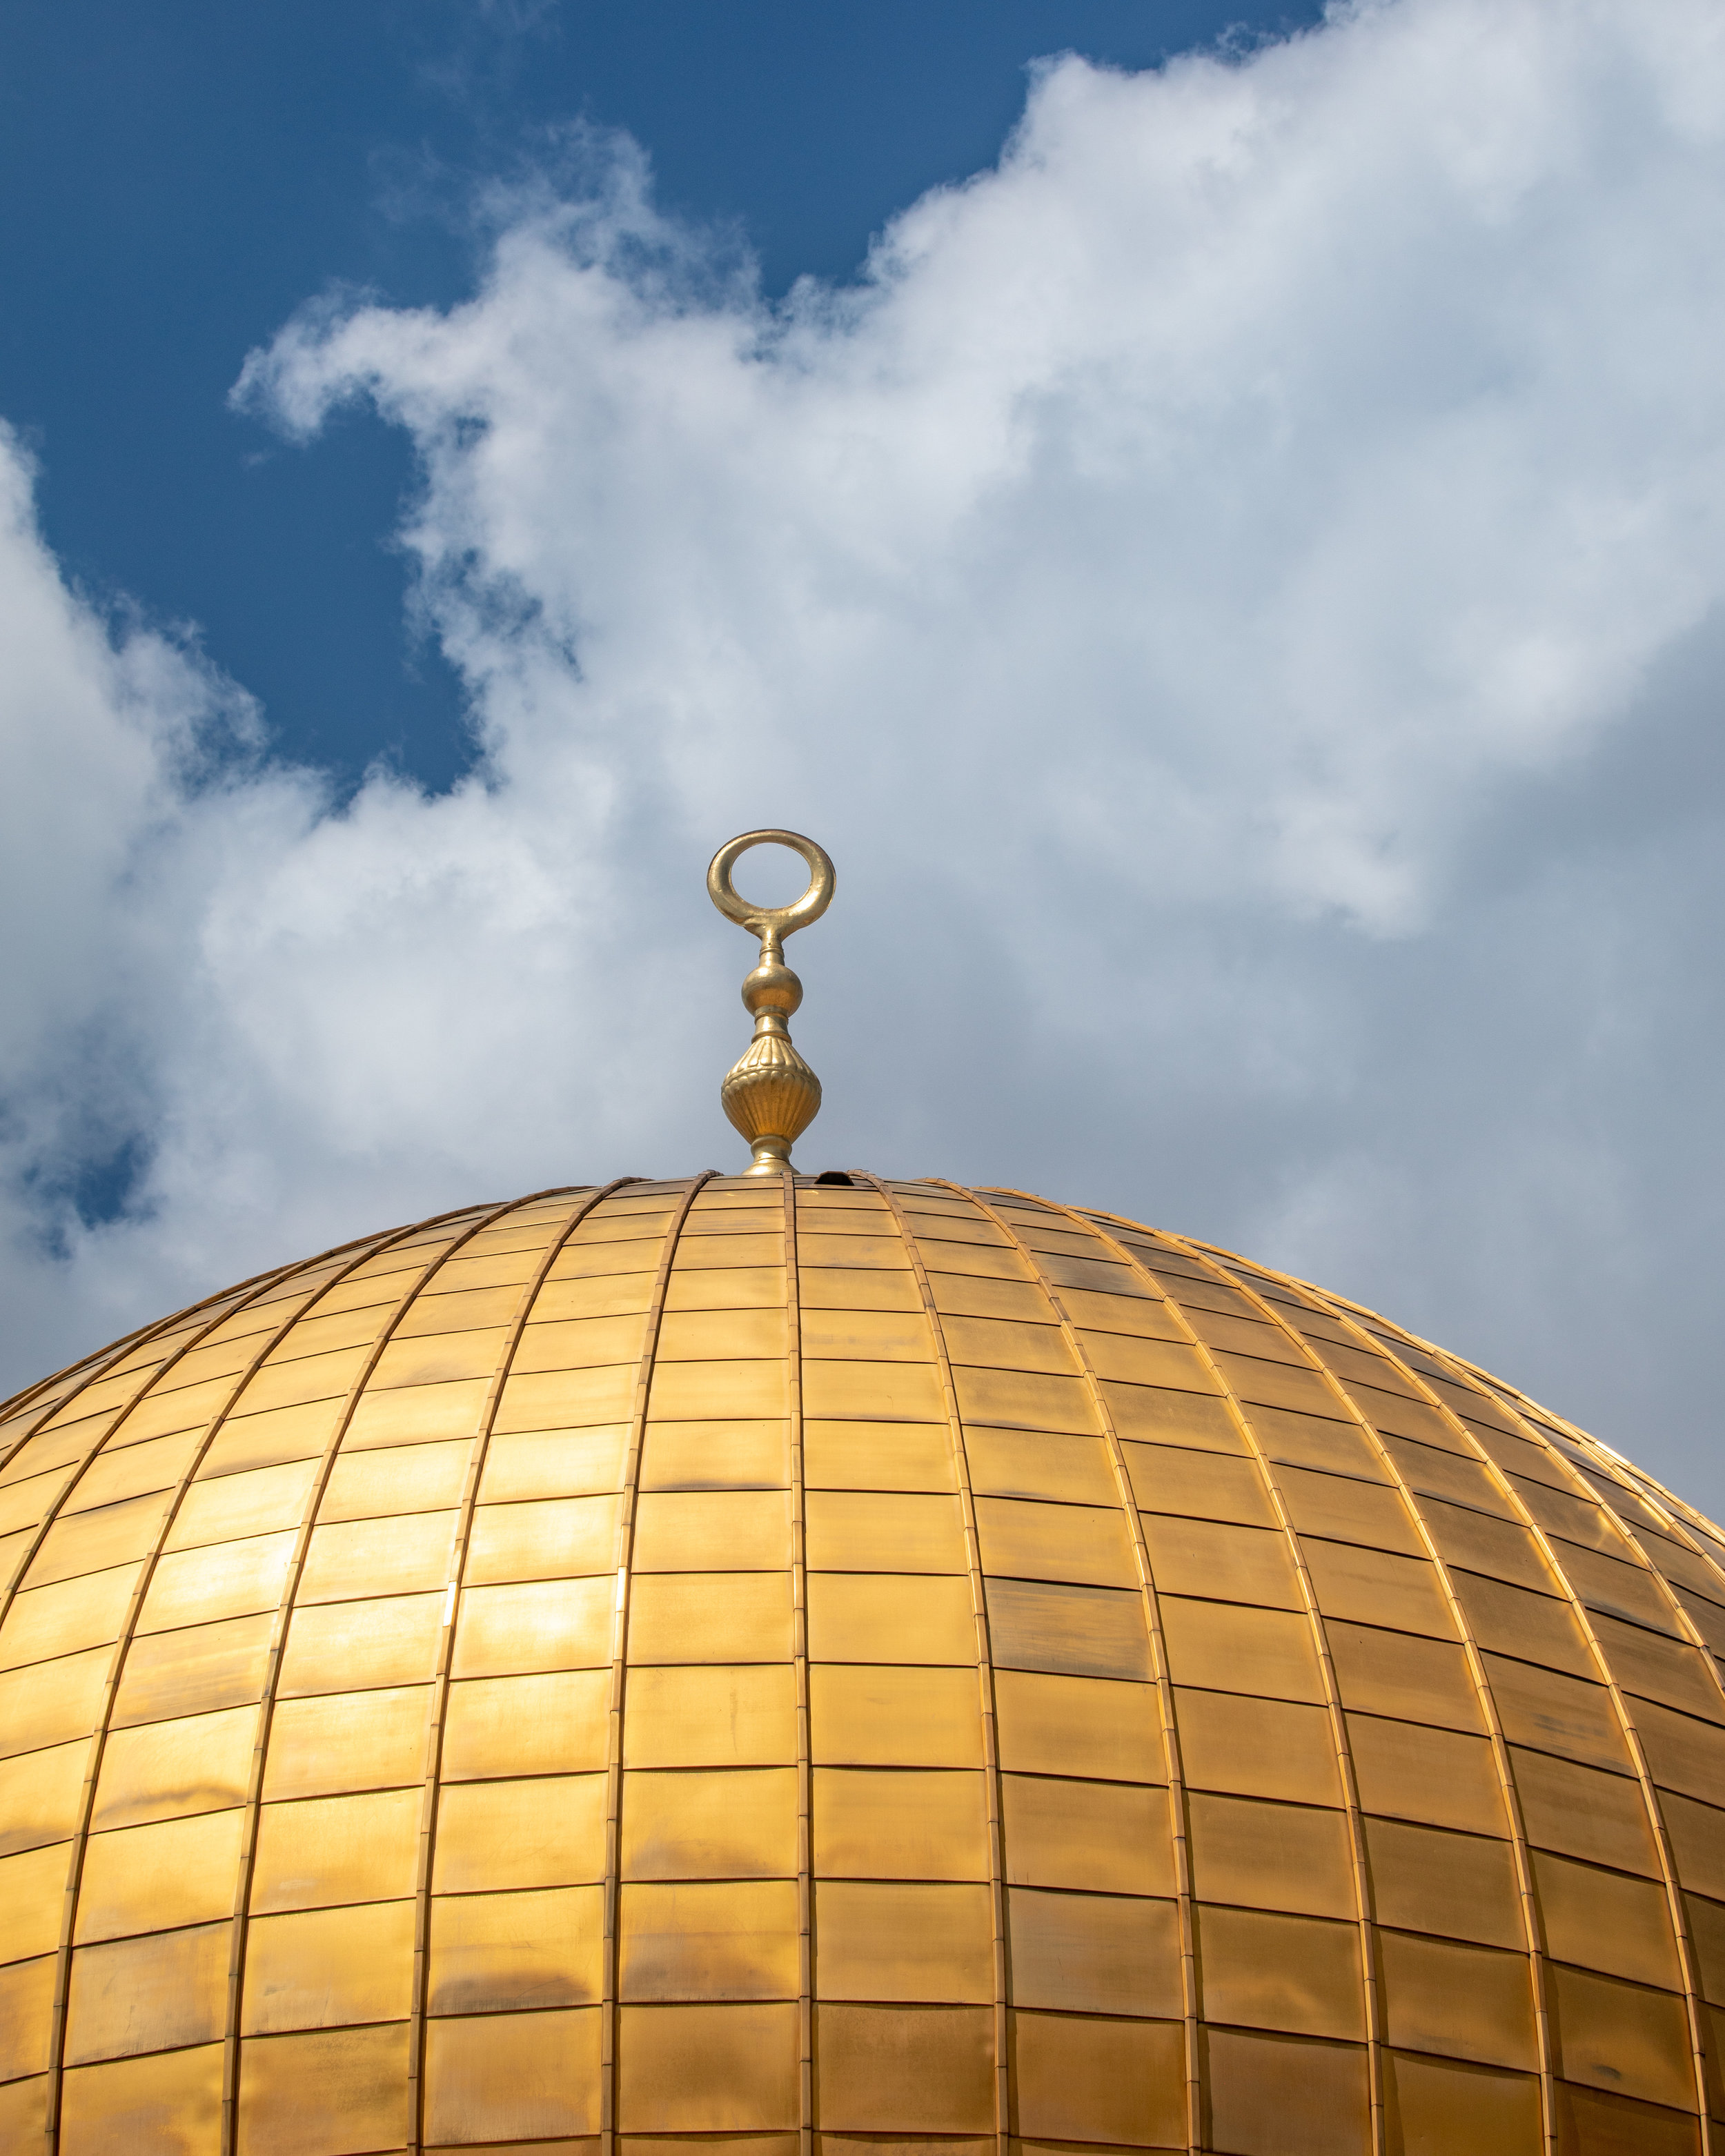 The Temple Mount - Dome of Rock